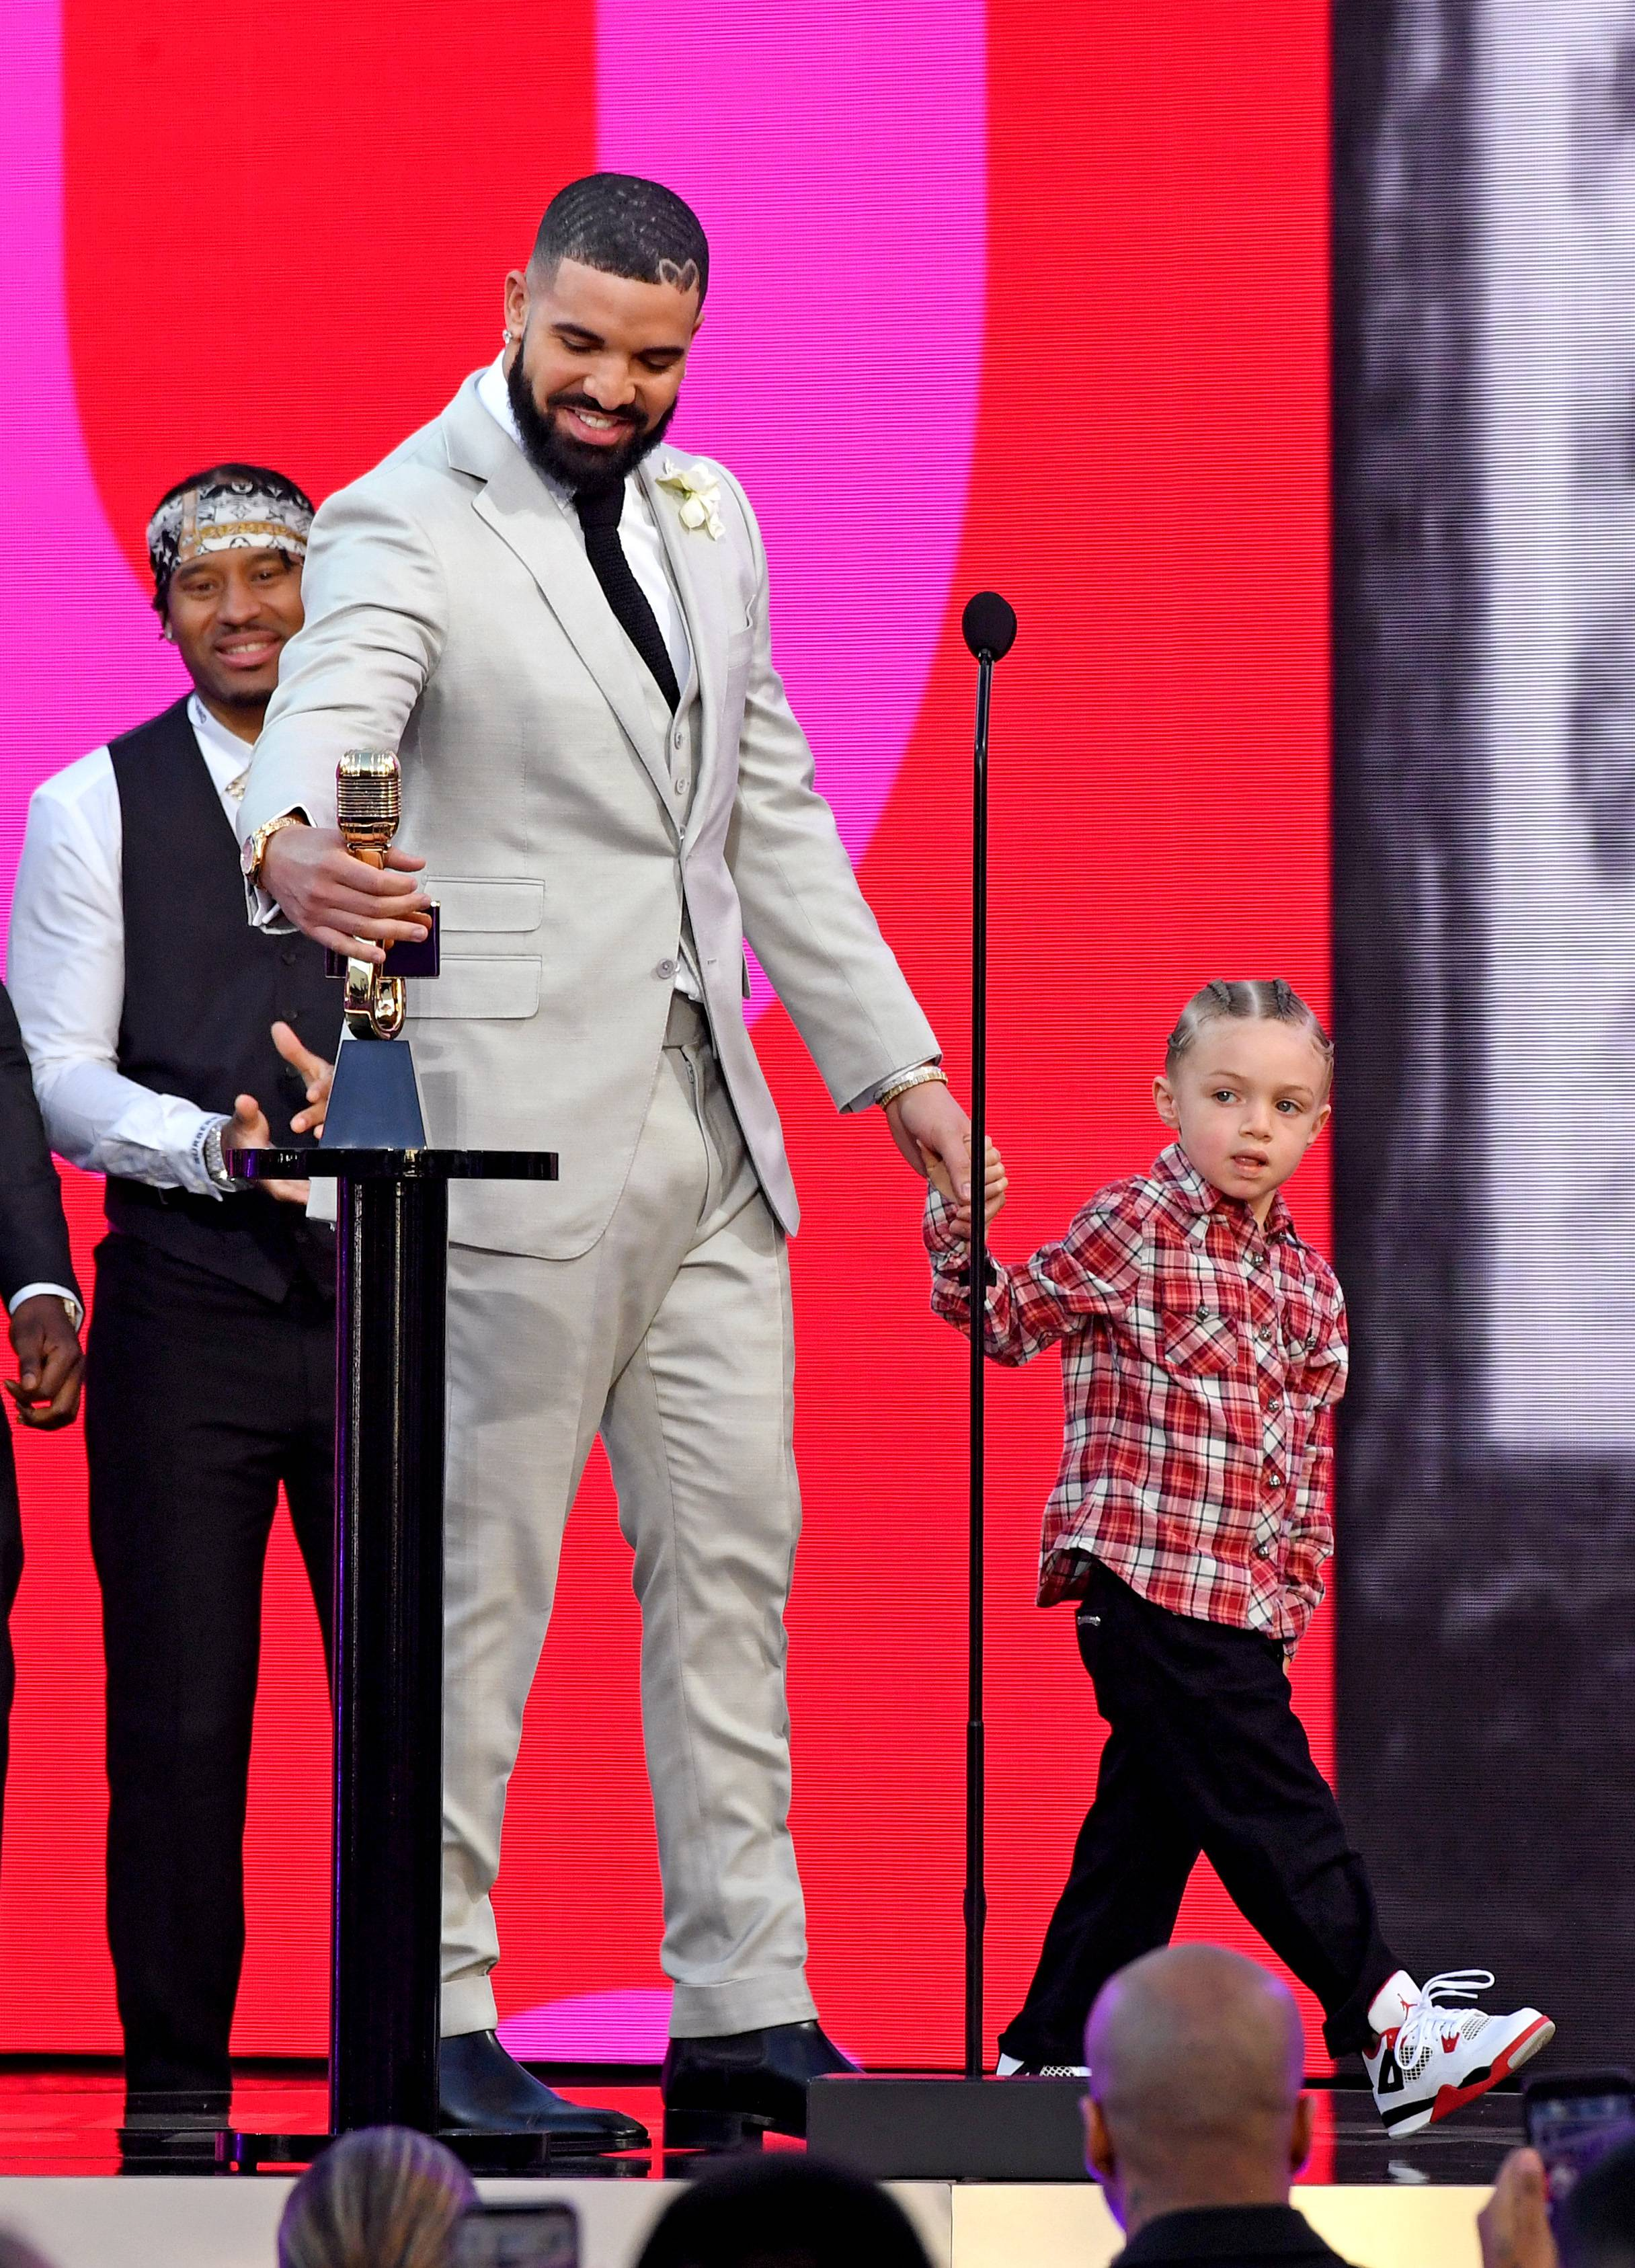 Drake And Adonis Graham - Drake's sonAdonis(3)caused quite a stir at the 2021 Billboard Music Awards with his fresh new kicks and neatly styled cornrows. We love that the legendary rapper and the 'Artist Of The Decade' recipient shared the monumental moment with his baby boy. So sweet!(Photo by Kevin Mazur/Getty Images) (Photo by Kevin Mazur/Getty Images)